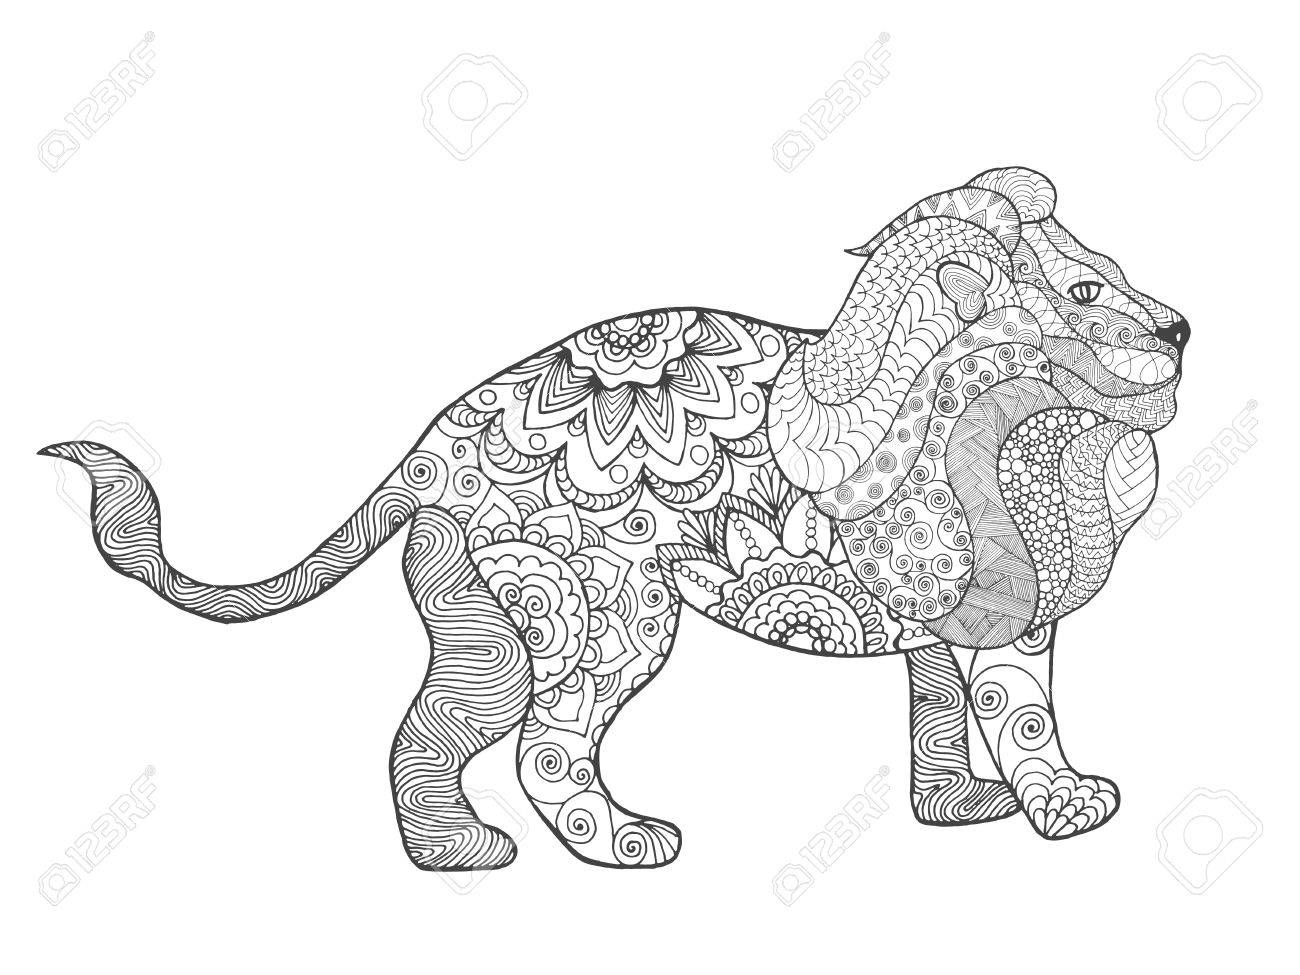 Coloring Pages Totem Animals : Lion adult antistress coloring page black white hand drawn